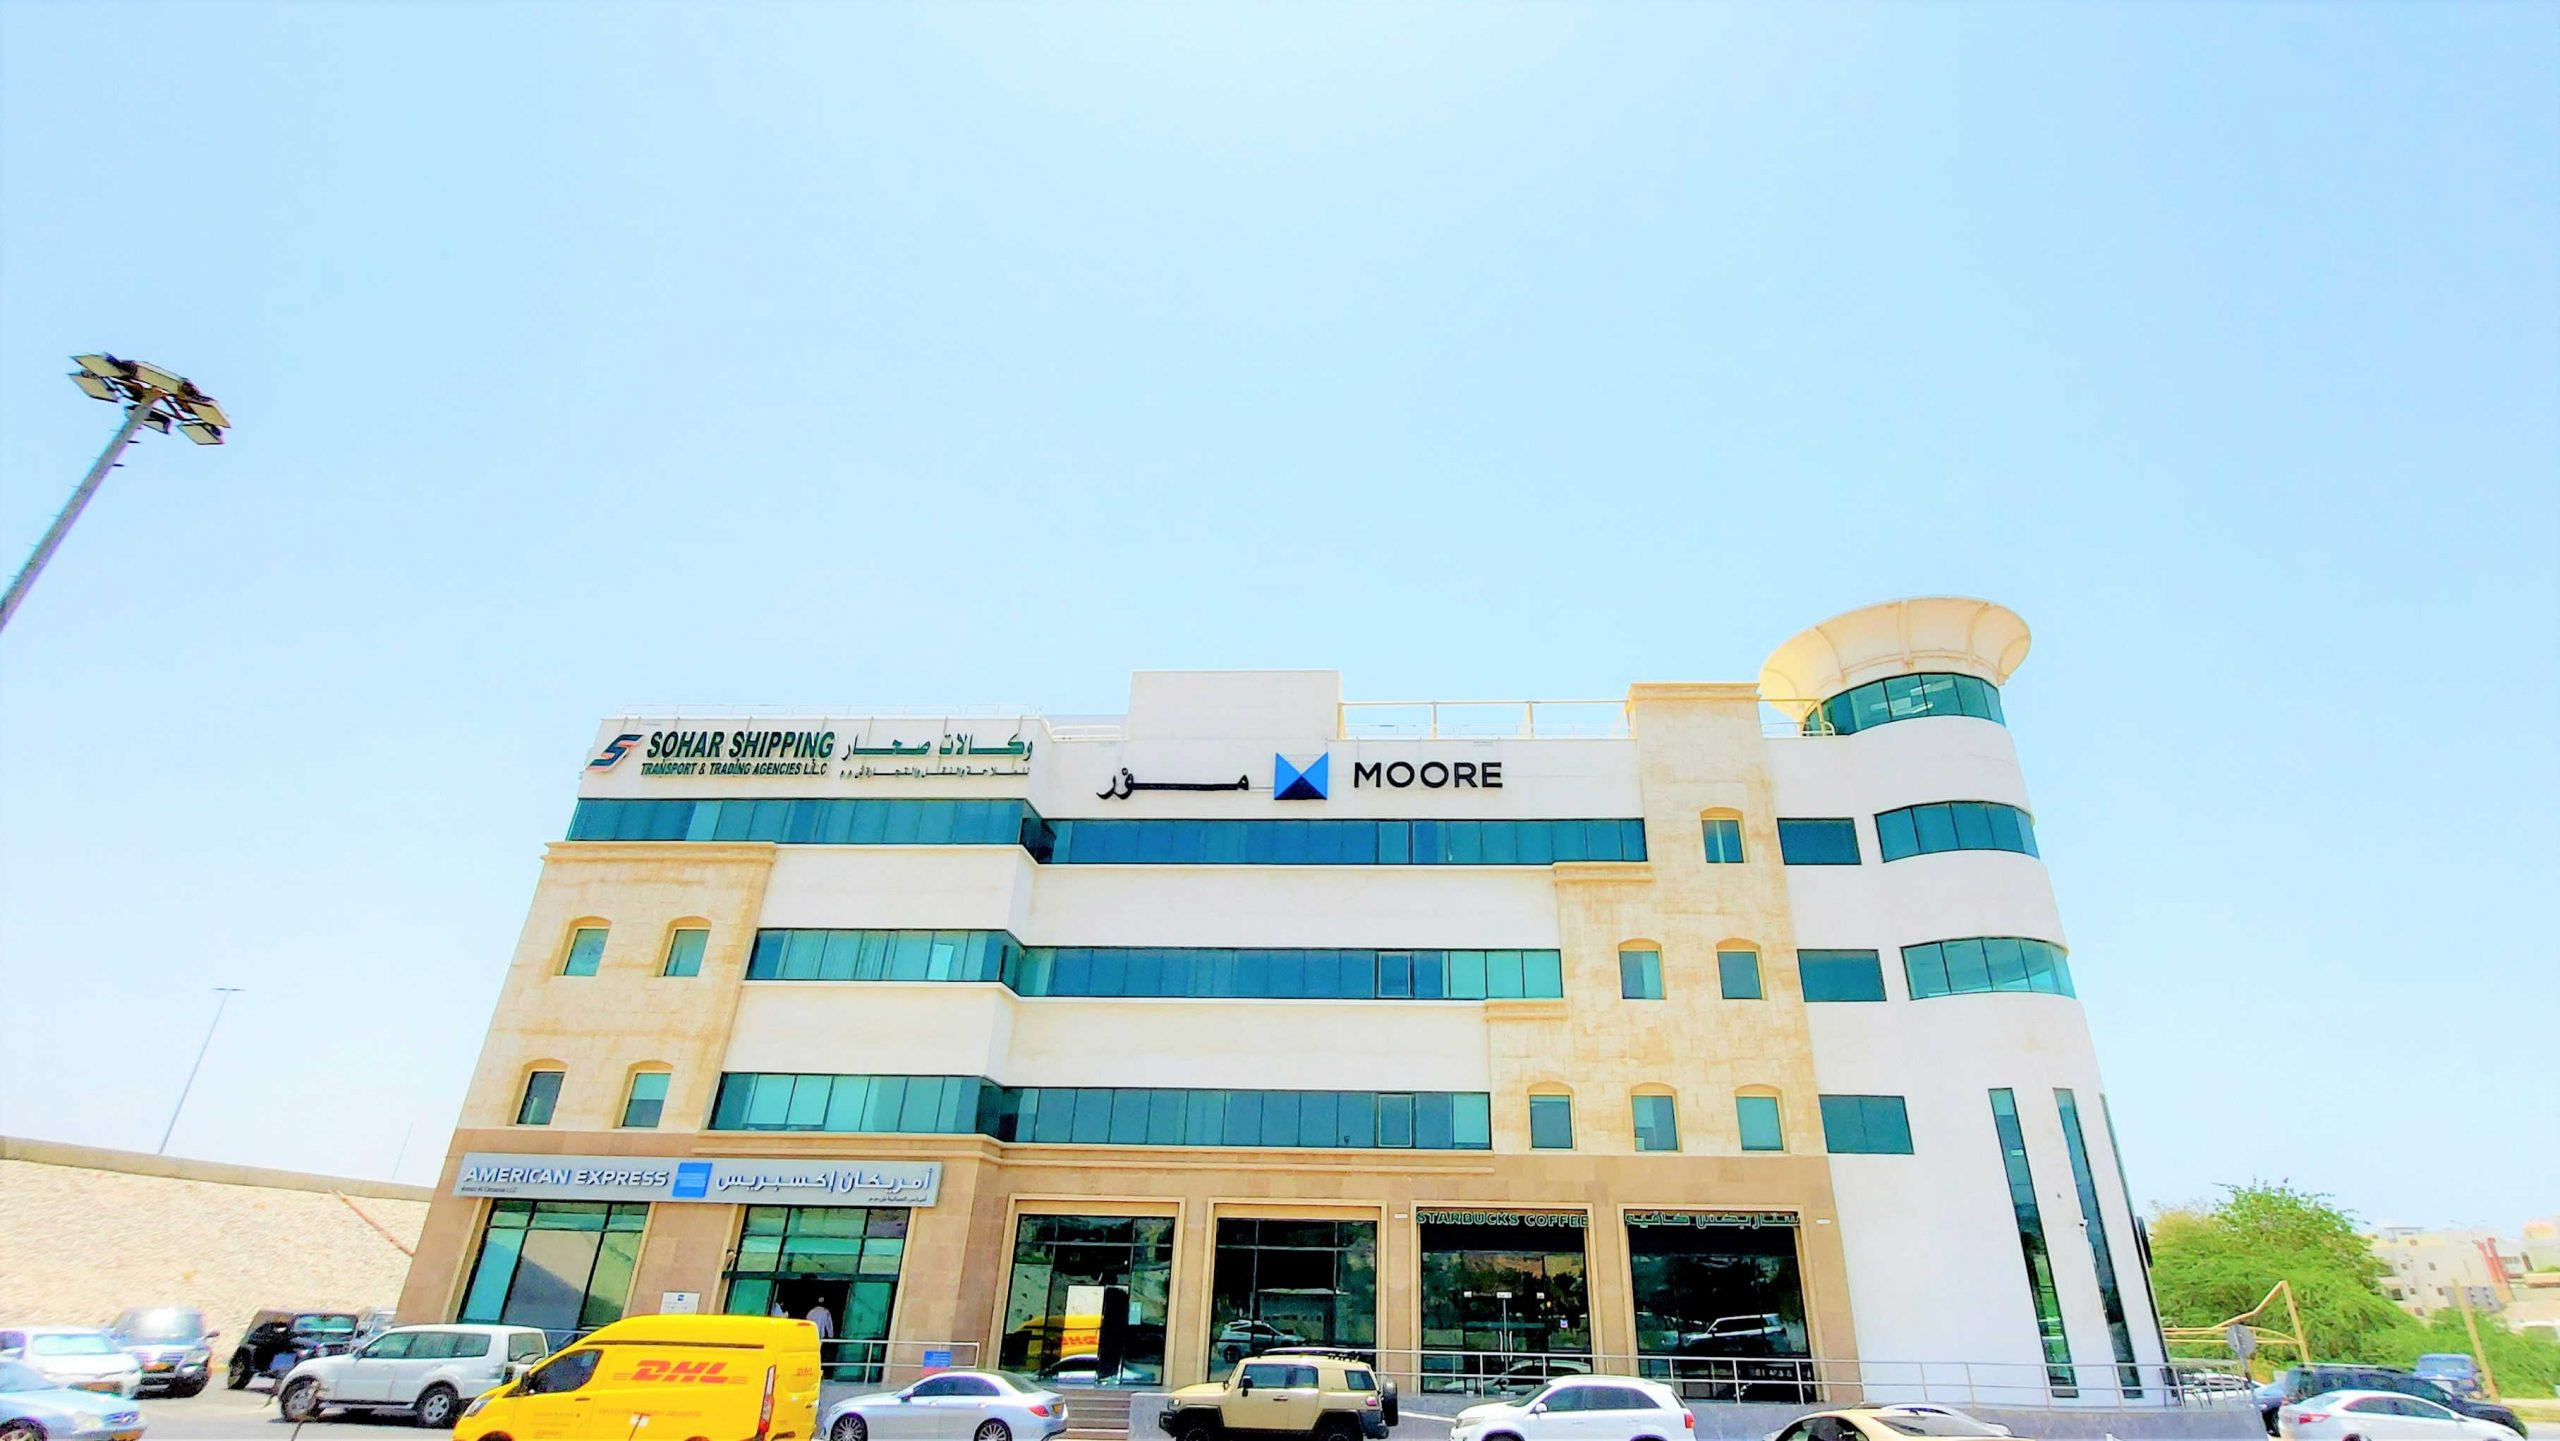 """You are currently viewing Amex Building <br><span class=""""headlin"""">Qurum, Muscat, Oman</span><br><span class=""""headlin2"""">Category: Office Space – For Rent</span>"""